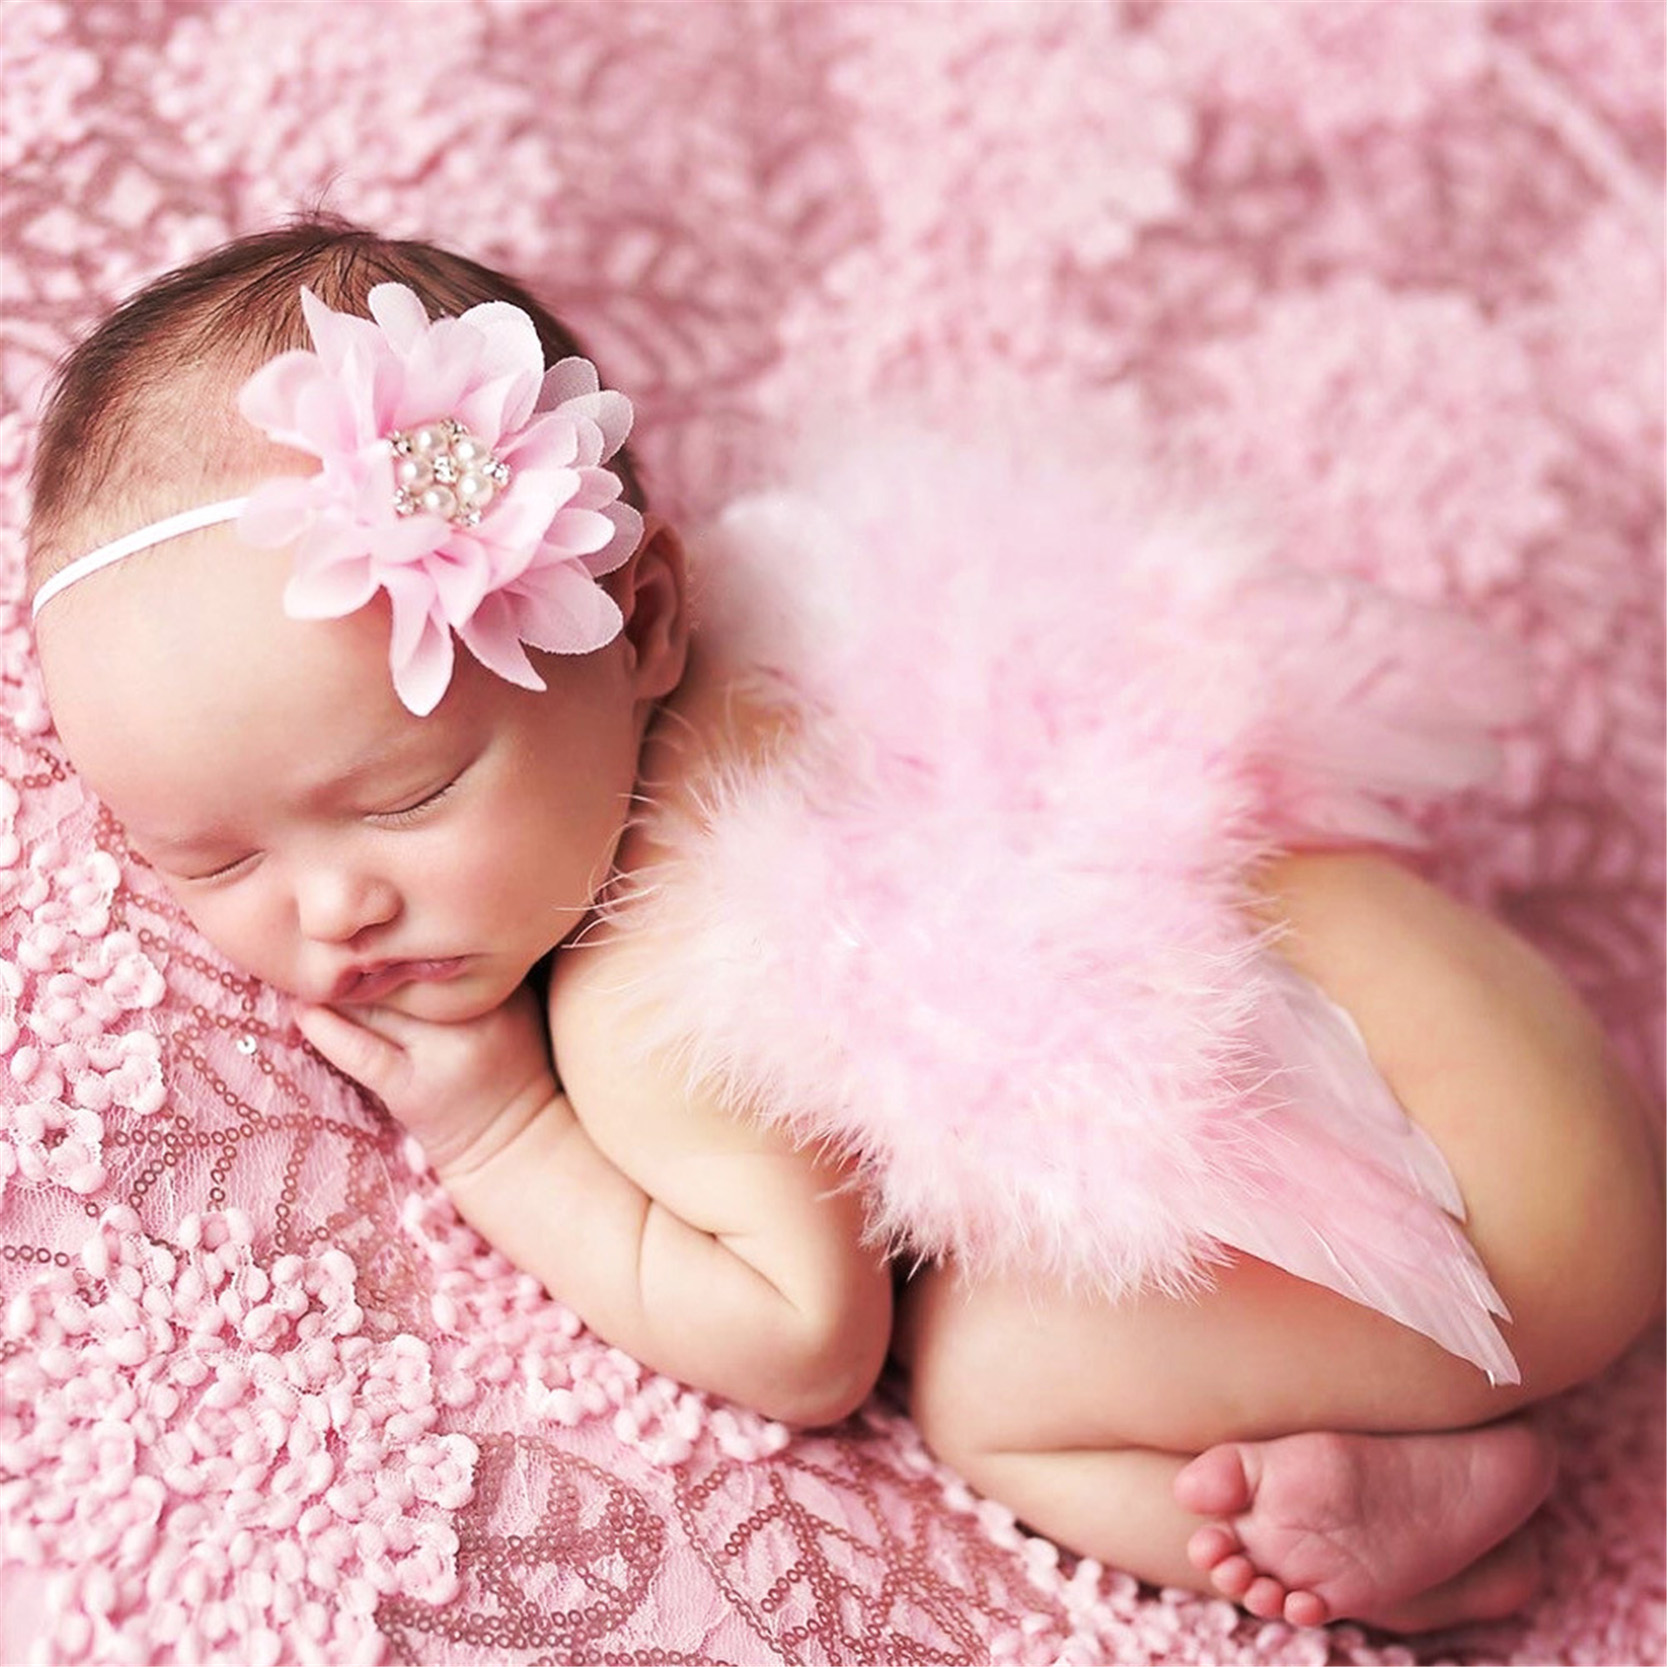 Angel Wings Feather Wings Baby Girl Flower Pearl Headband Photo Shoot Hair Accessories For Newborn Photography Props 0-6 Months